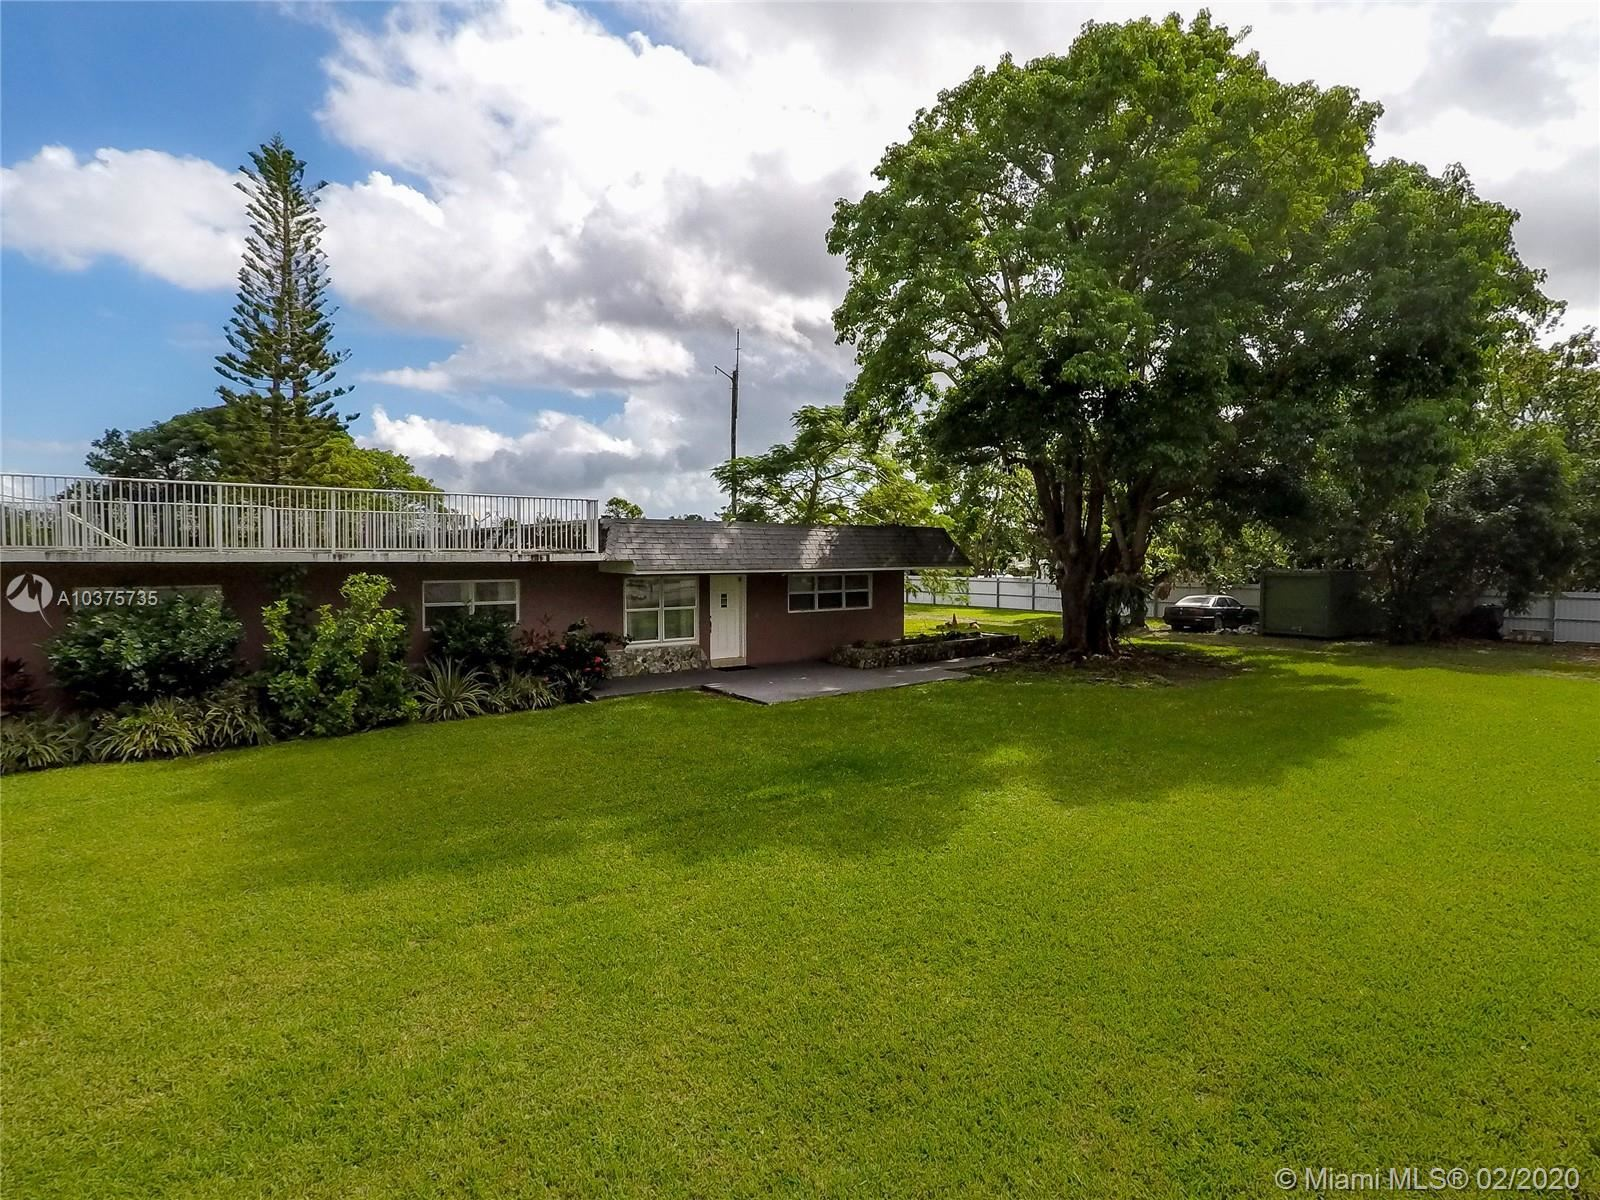 24201 SW 124th Ave, Homestead, FL 33032 - #: A10375735